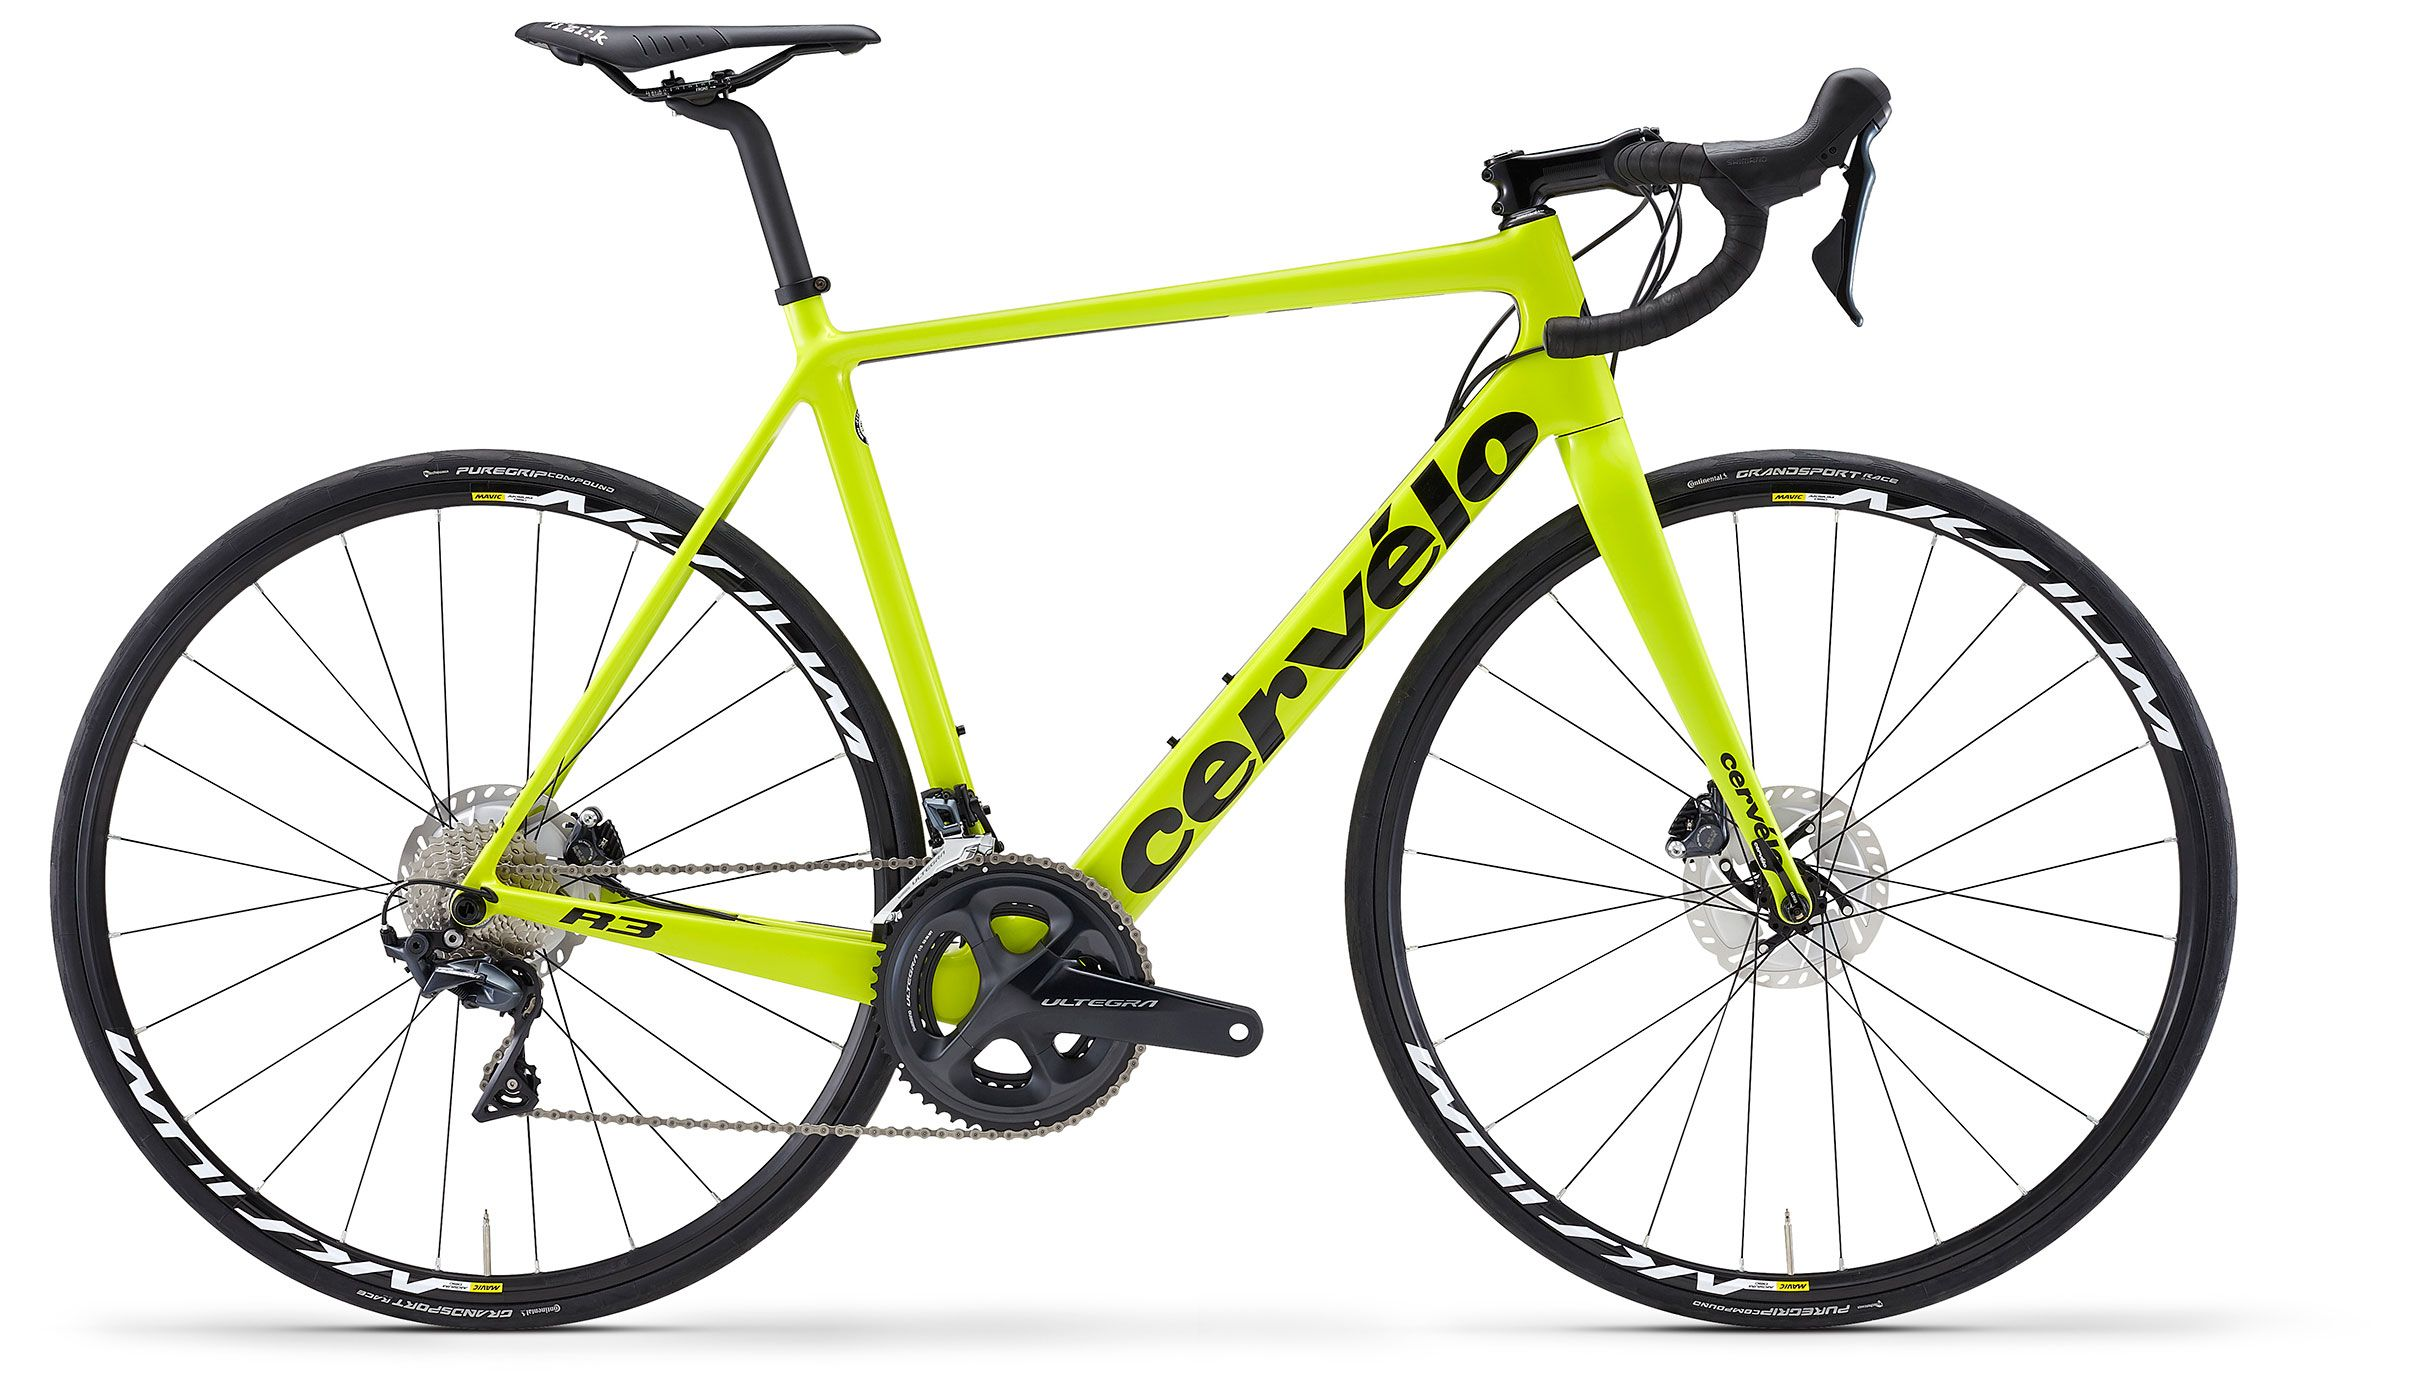 Велосипед Cervelo R3 Disc Ultegra 2018 велосипед cannondale supersix evo ultegra 3 2016